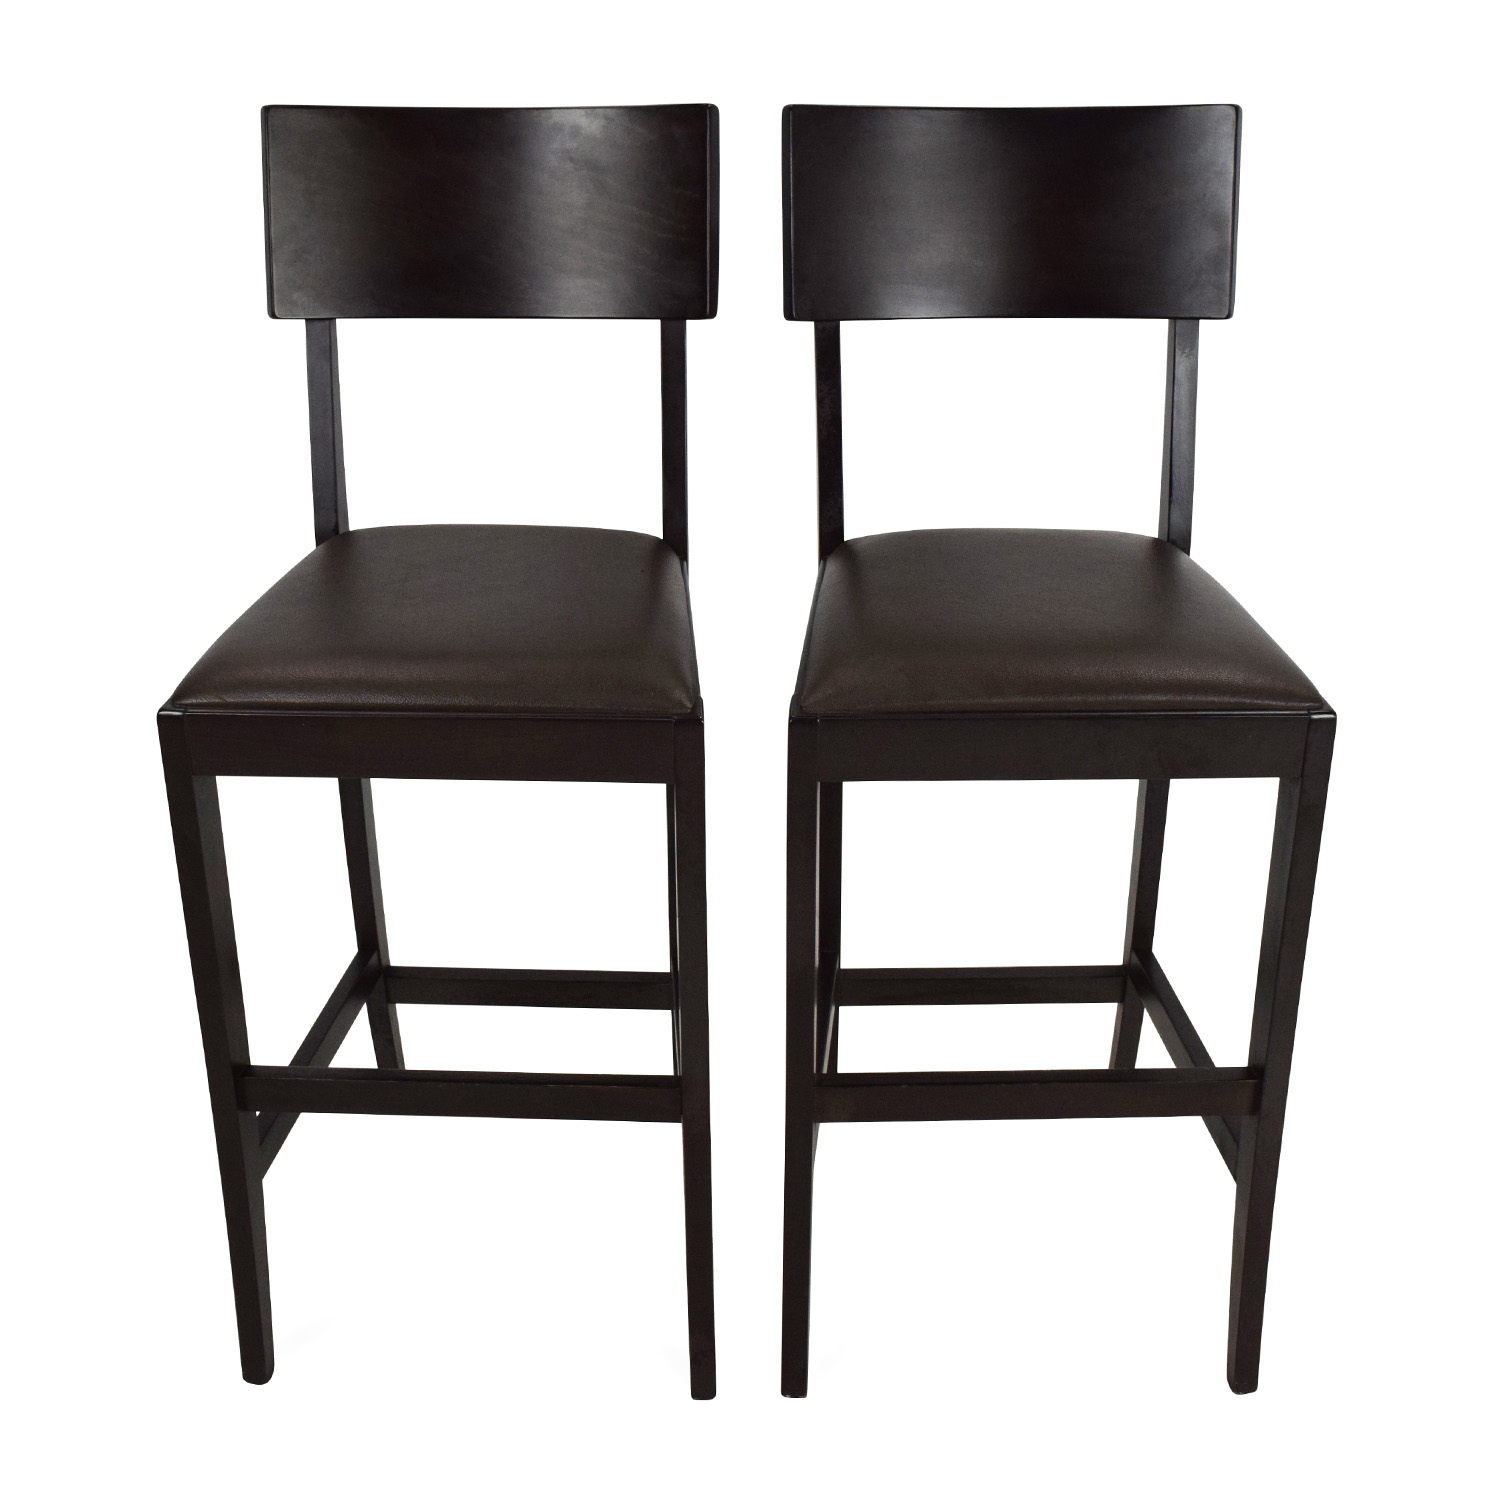 52 Off Crate And Barrel Crate And Barrel Bar Stools